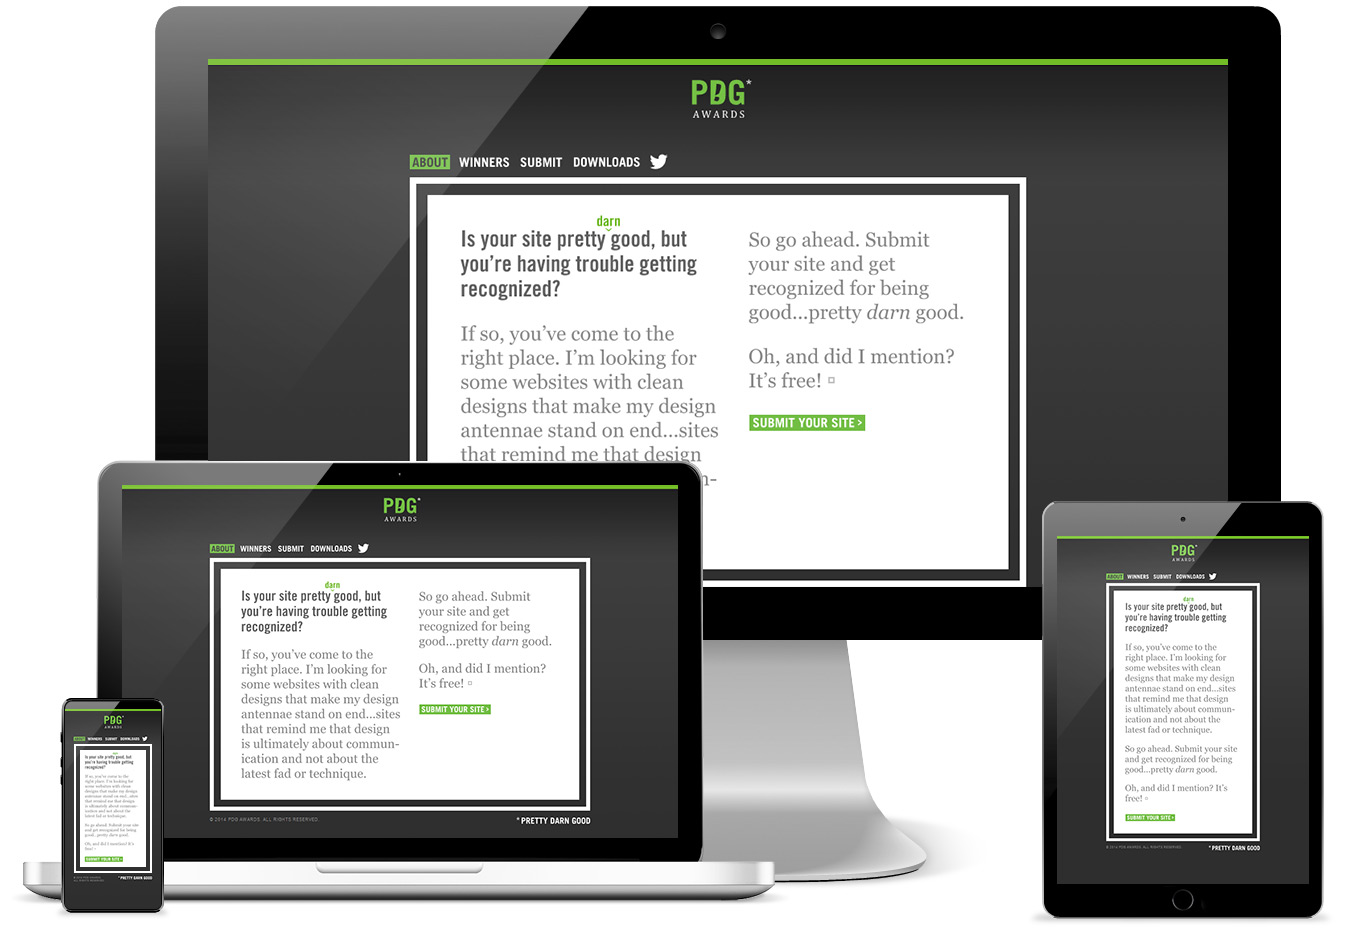 PDG Awards (Responsive)